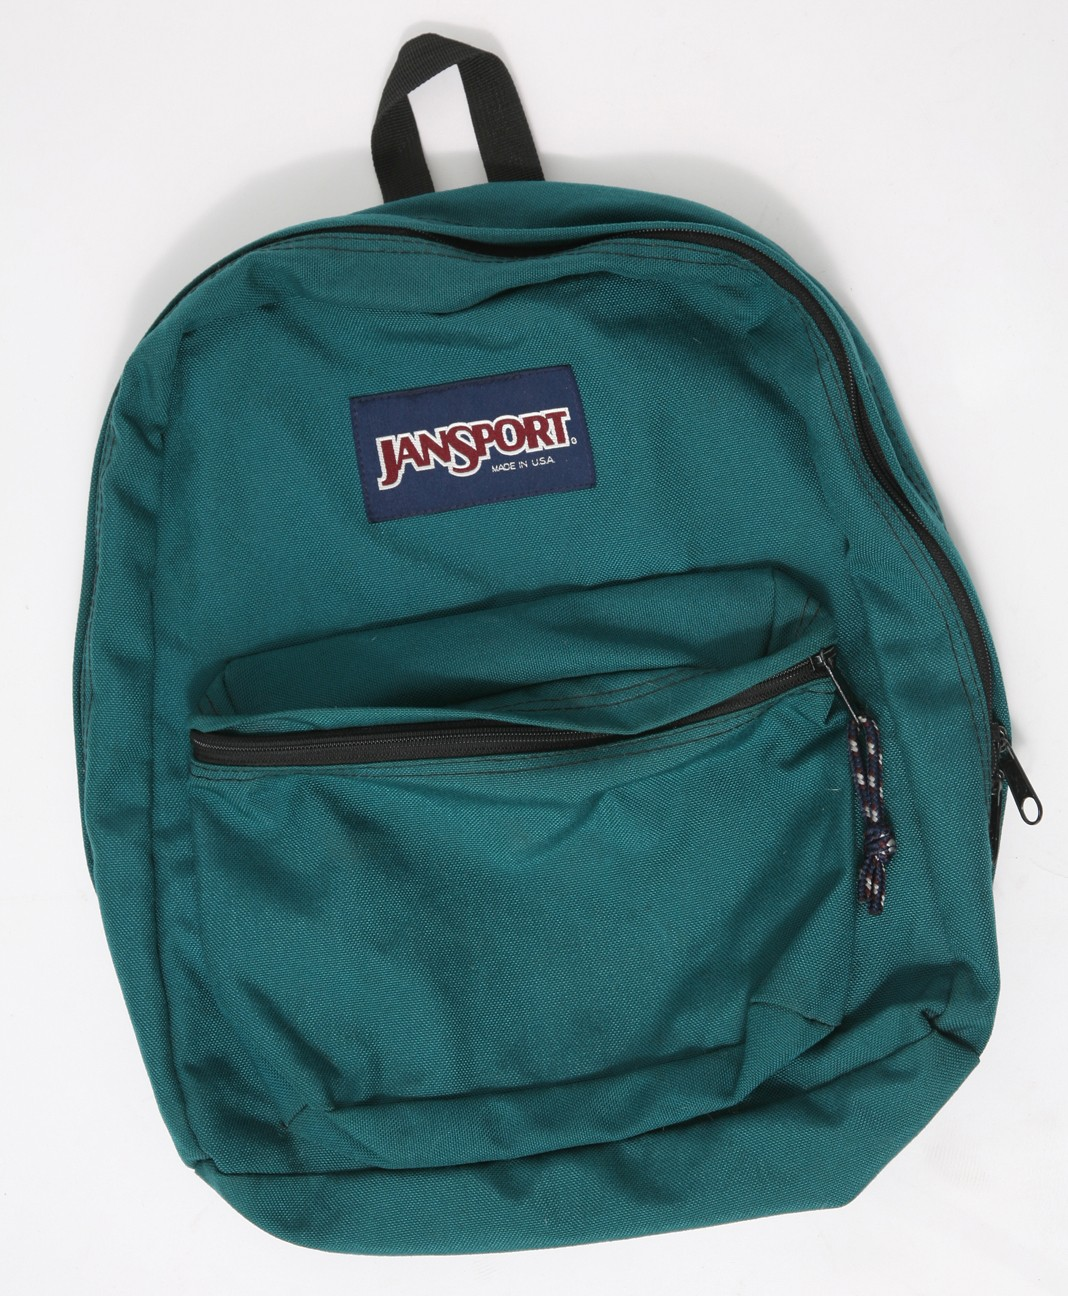 Jansport School Backpacks 0DRocZoK